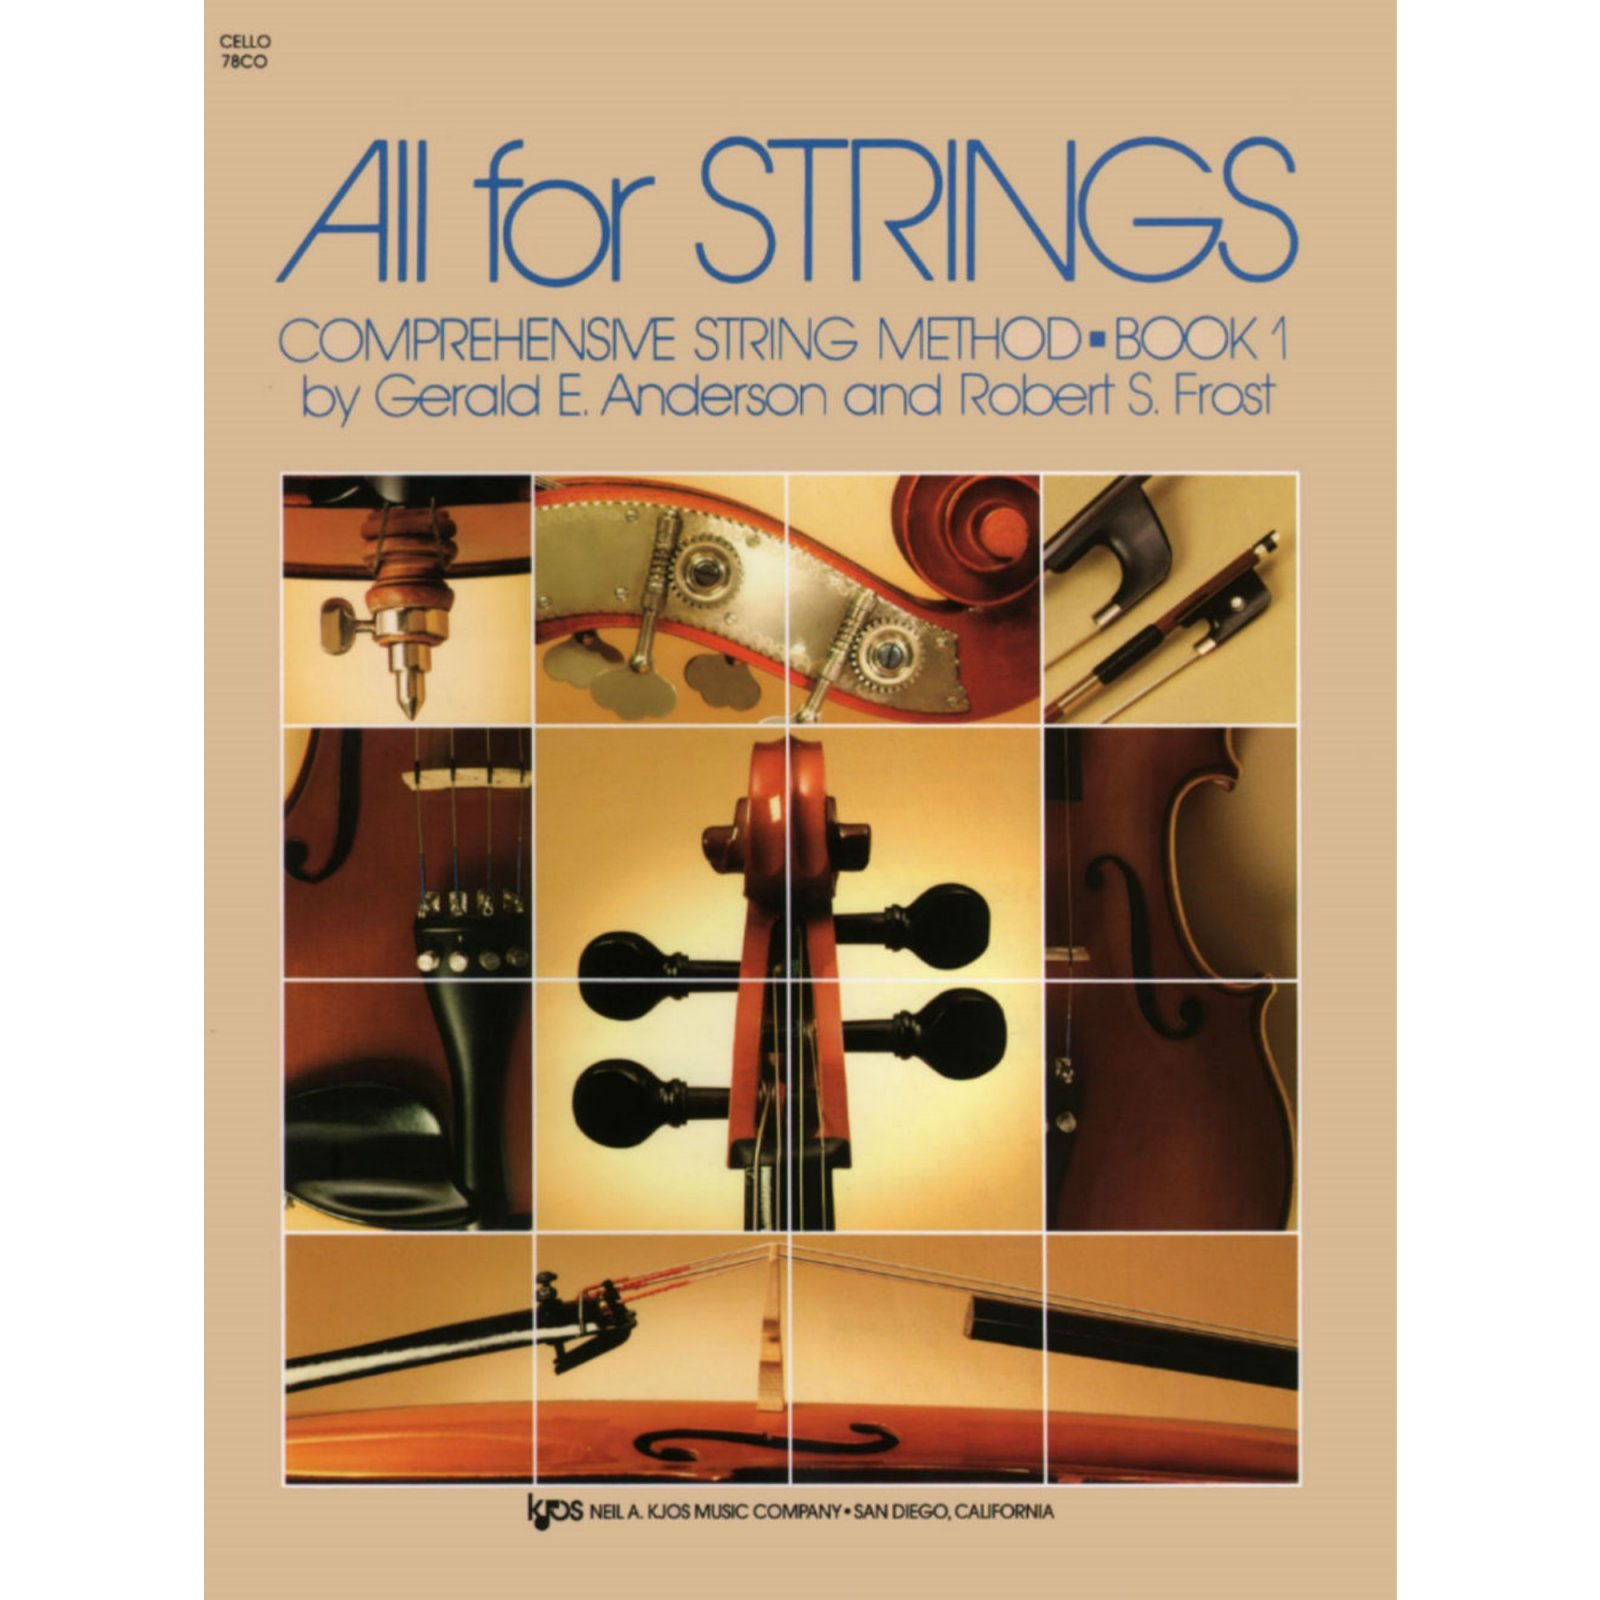 All For Strings Comprehensive String Method Cello Book One